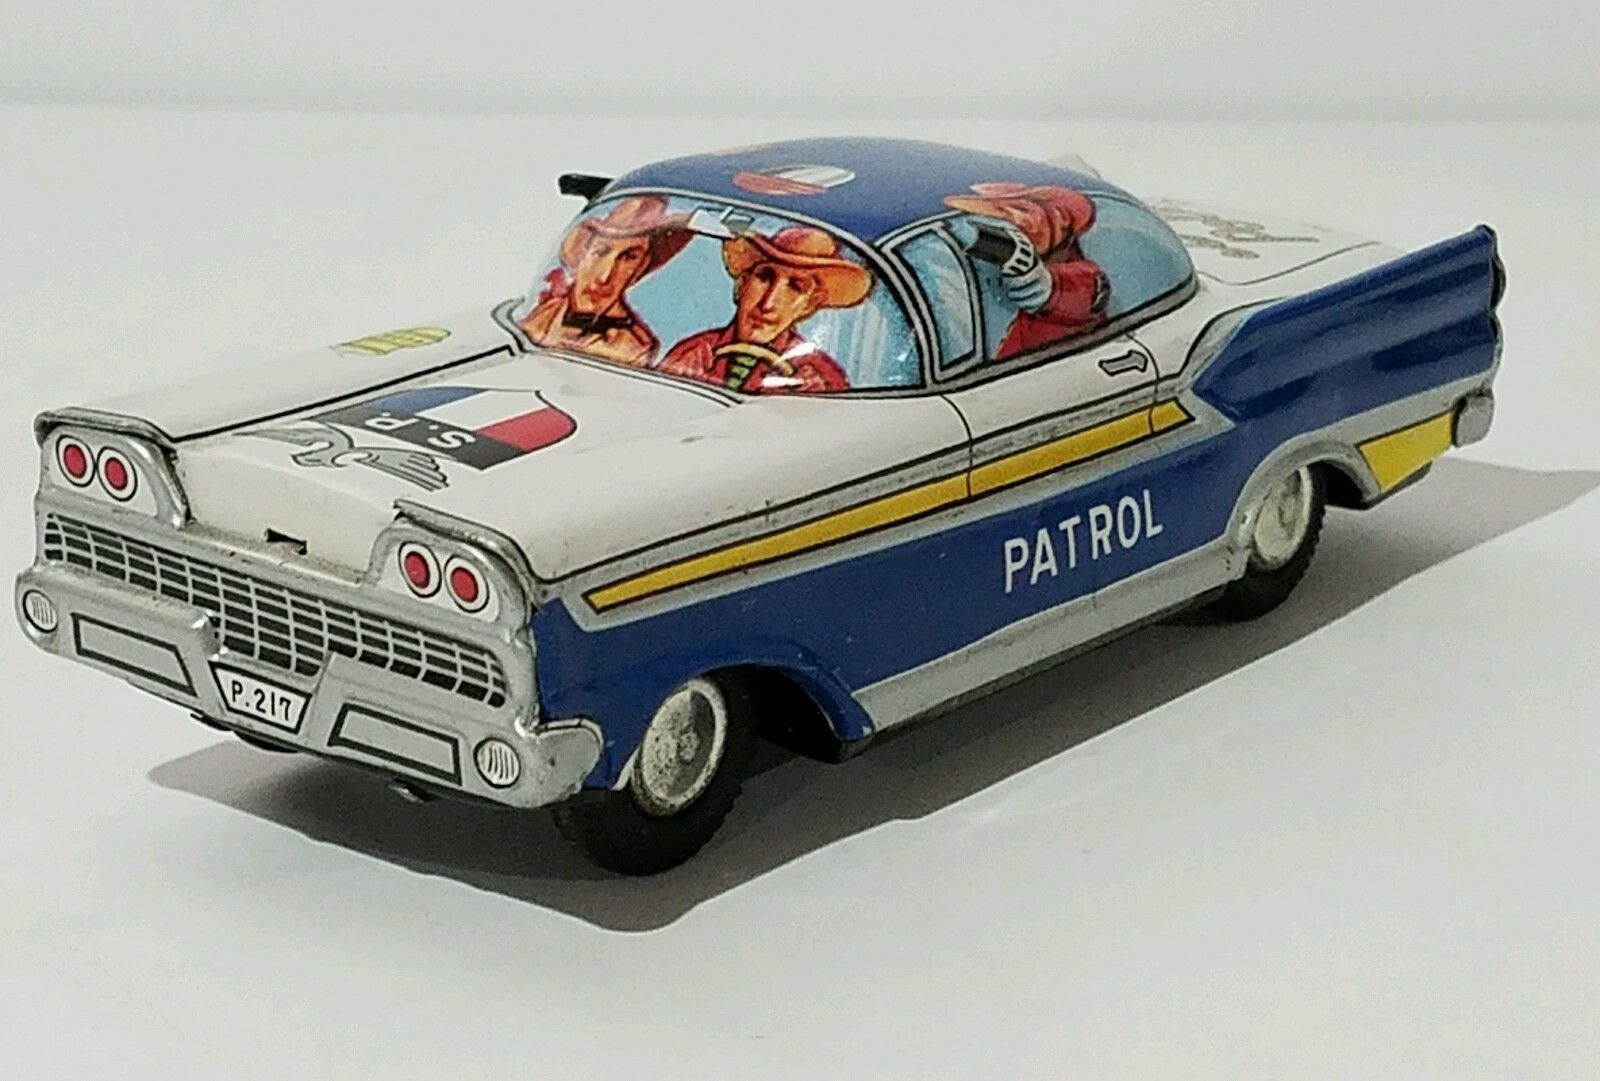 Vintage Tin Friction State Police Car Toy Made In Japan 1960s Ebay Toy Car Police Cars Classic Toys